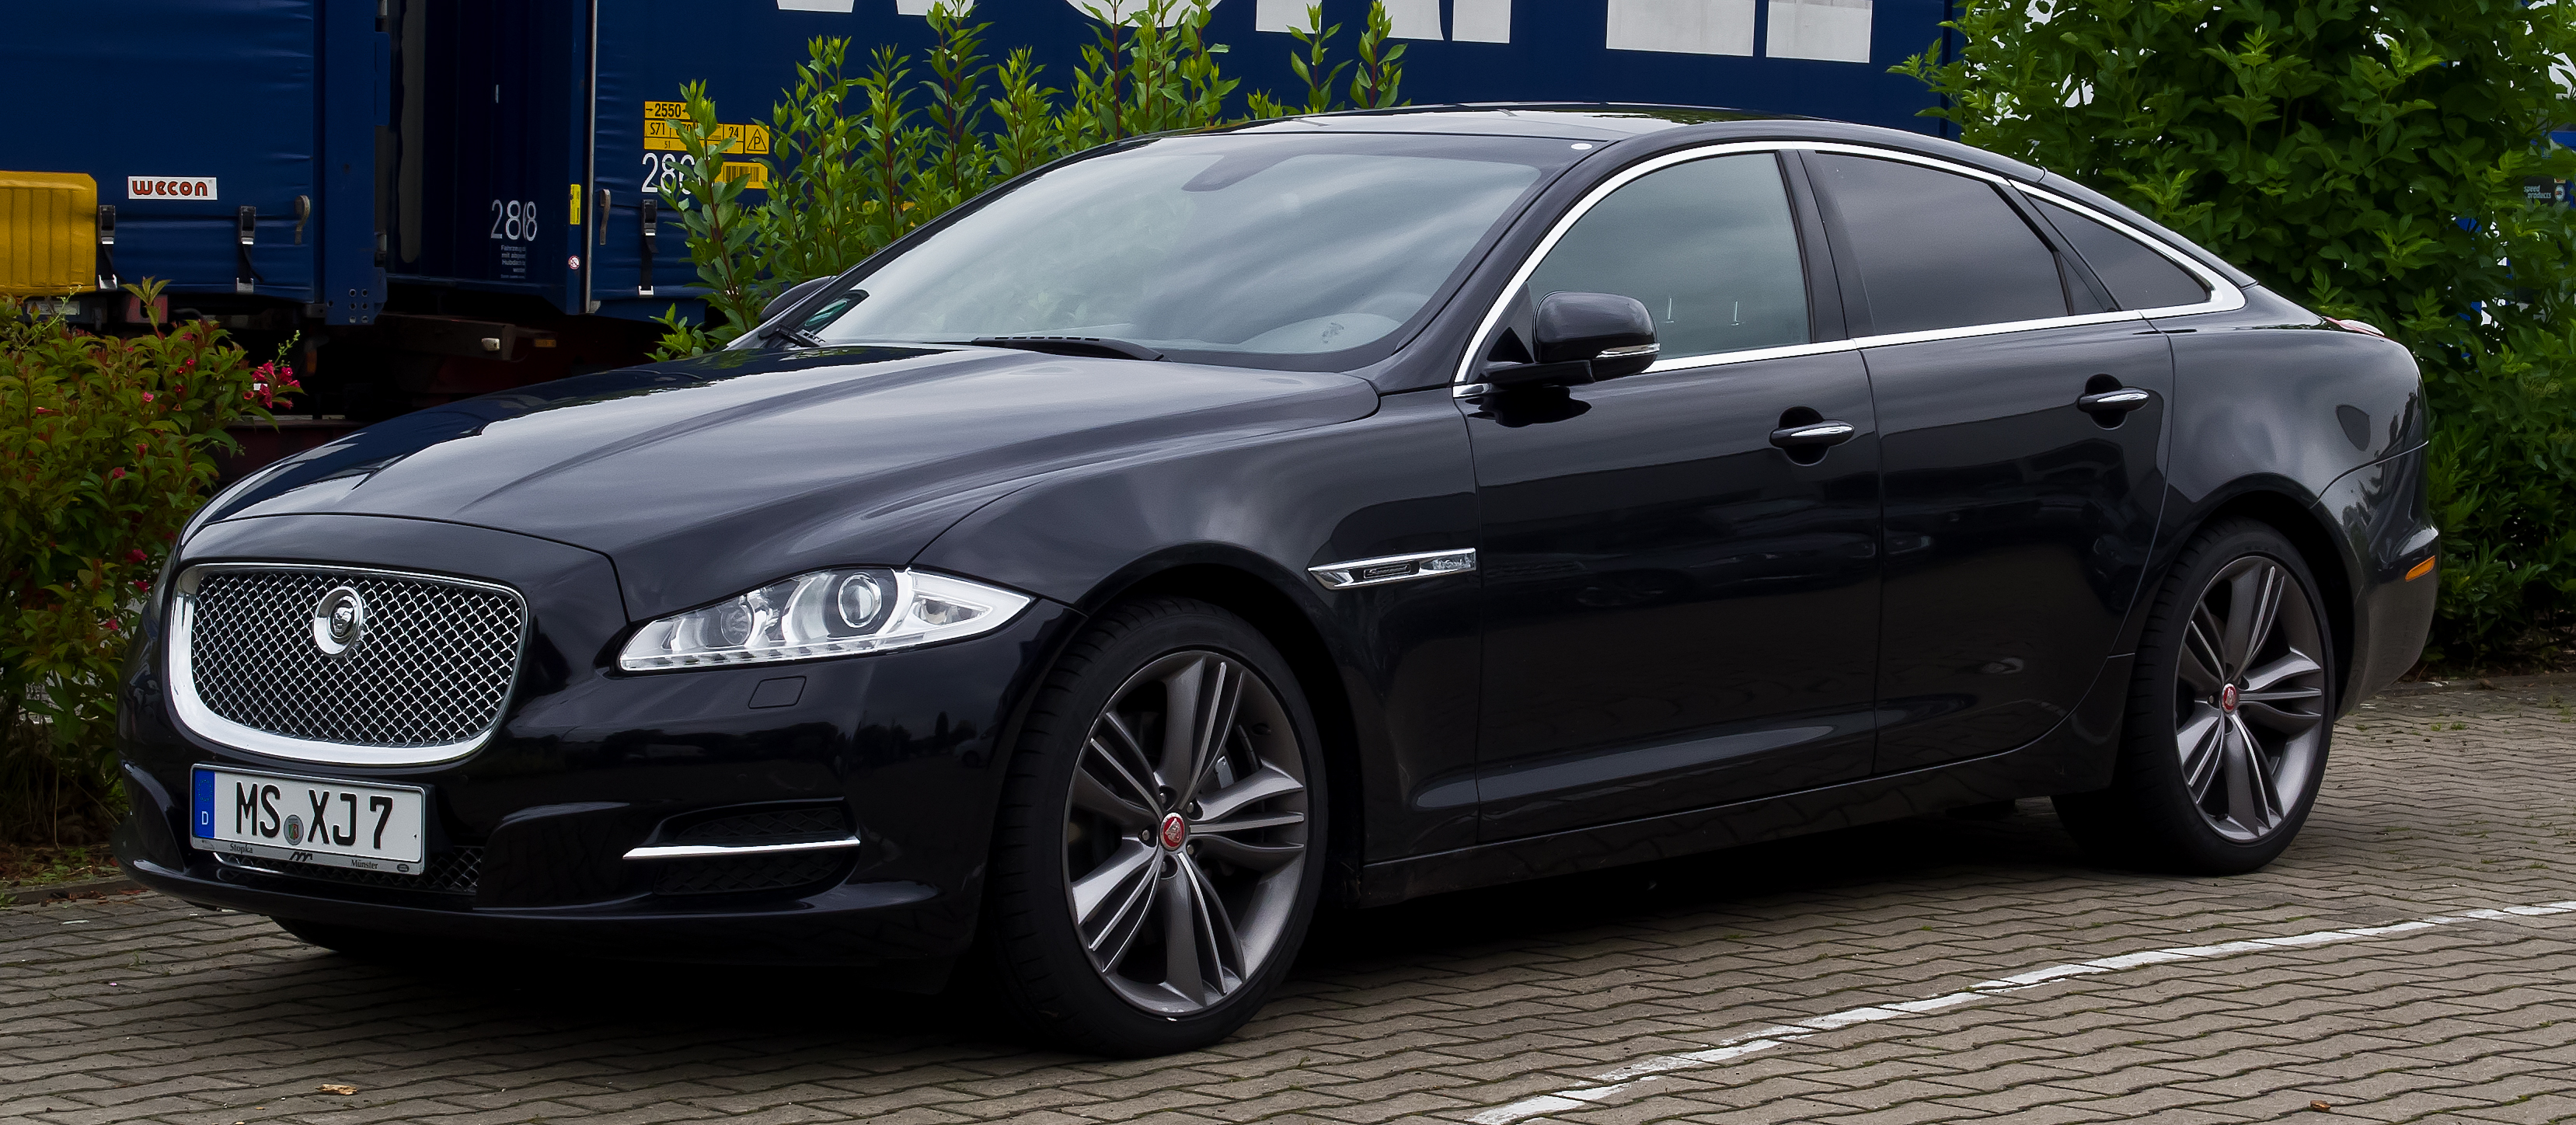 file jaguar xj 3 0 d s supersport x351 frontansicht 30 juni 2013 m wikipedia. Black Bedroom Furniture Sets. Home Design Ideas